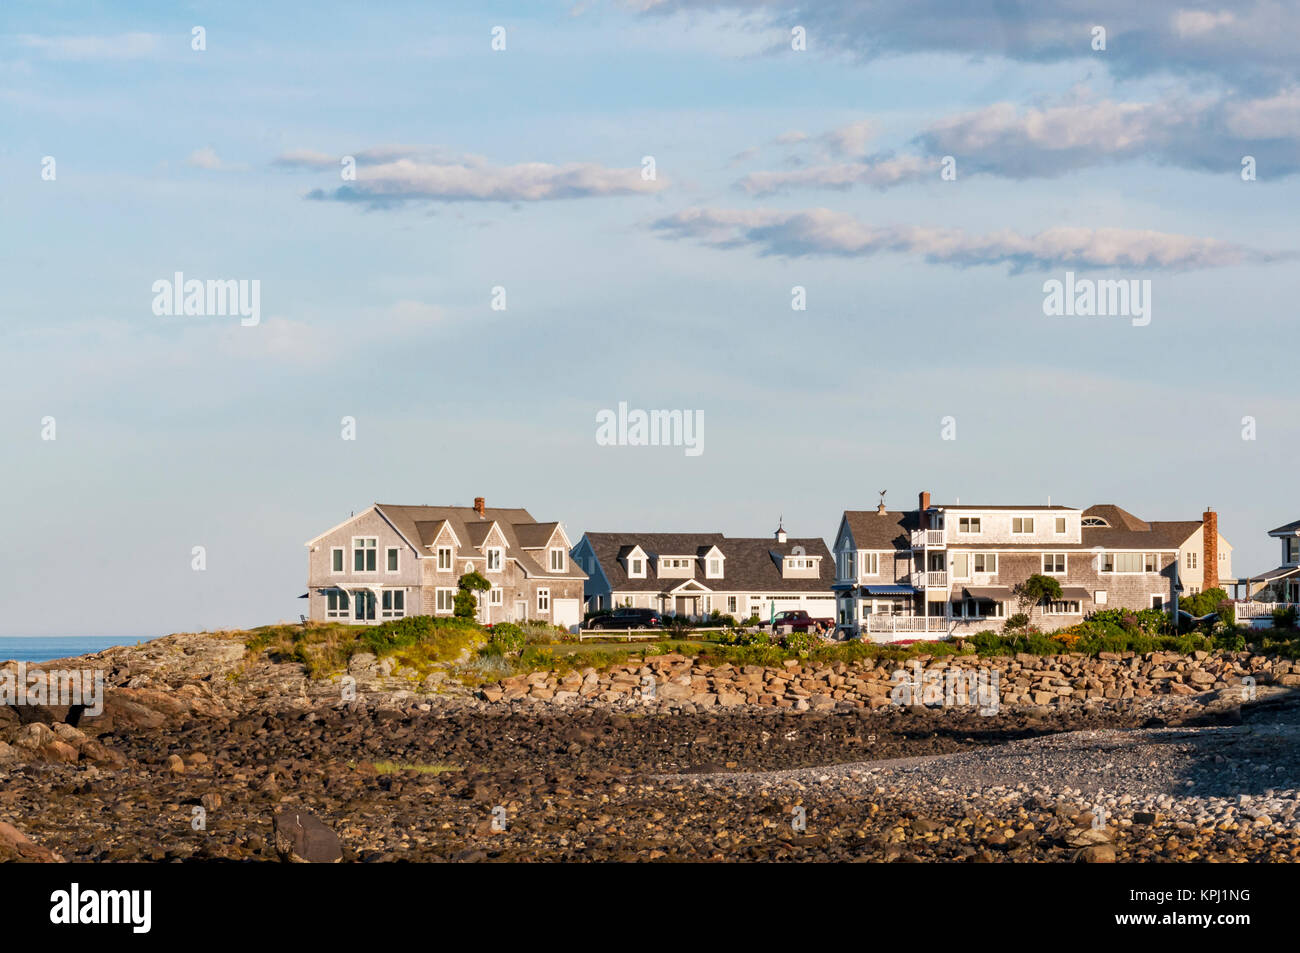 Houses near the coastline with blue and clean sky in Maine, USA - Stock Image